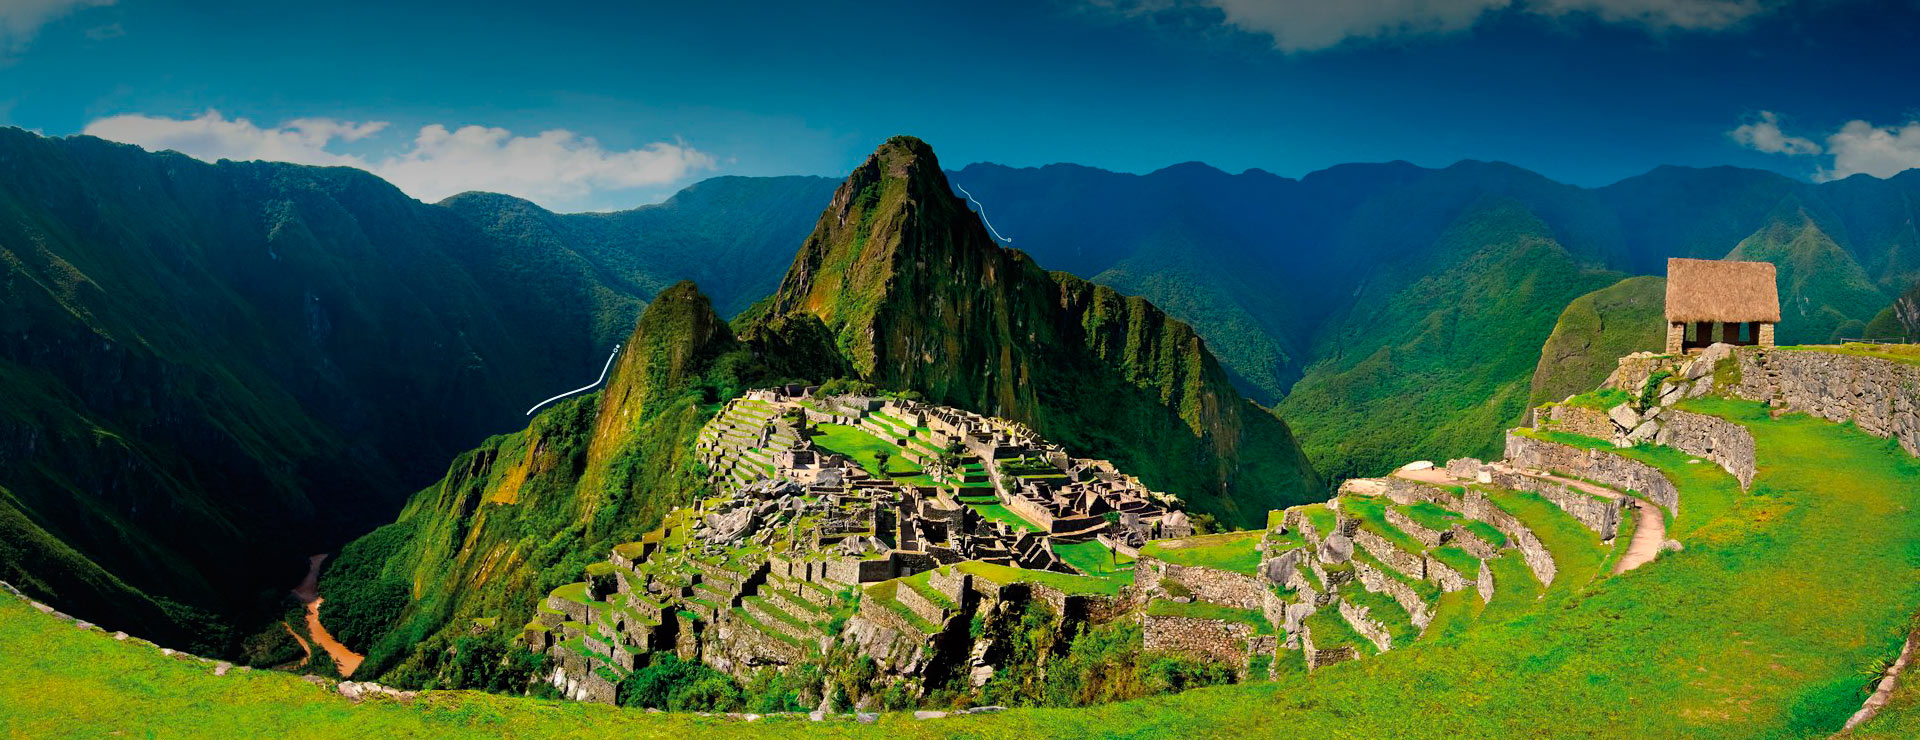 LUXURY TOUR COMFORTABLE PERU DAYS LIMA SACRED VALLEY - How far is machu picchu from lima